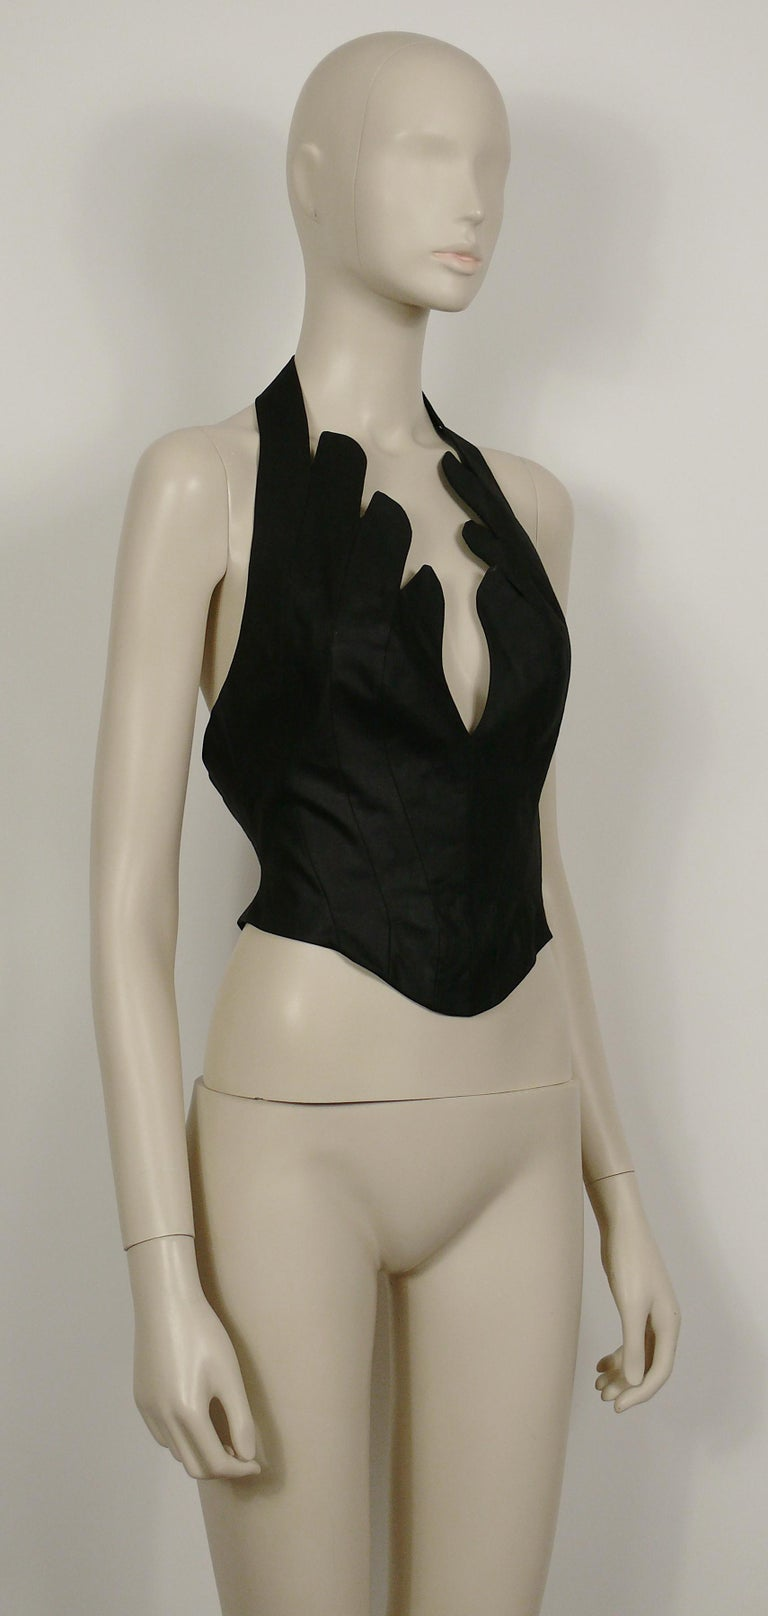 THIERRY MUGLER vintage iconic black coated cotton bustier corset with scalloped edges.  Snap button closure on the halter strap. Hook and eye loop closure at the back.  Label reads THIERRY MUGLER Paris. Made in France.  Size tag reads : 40. Please